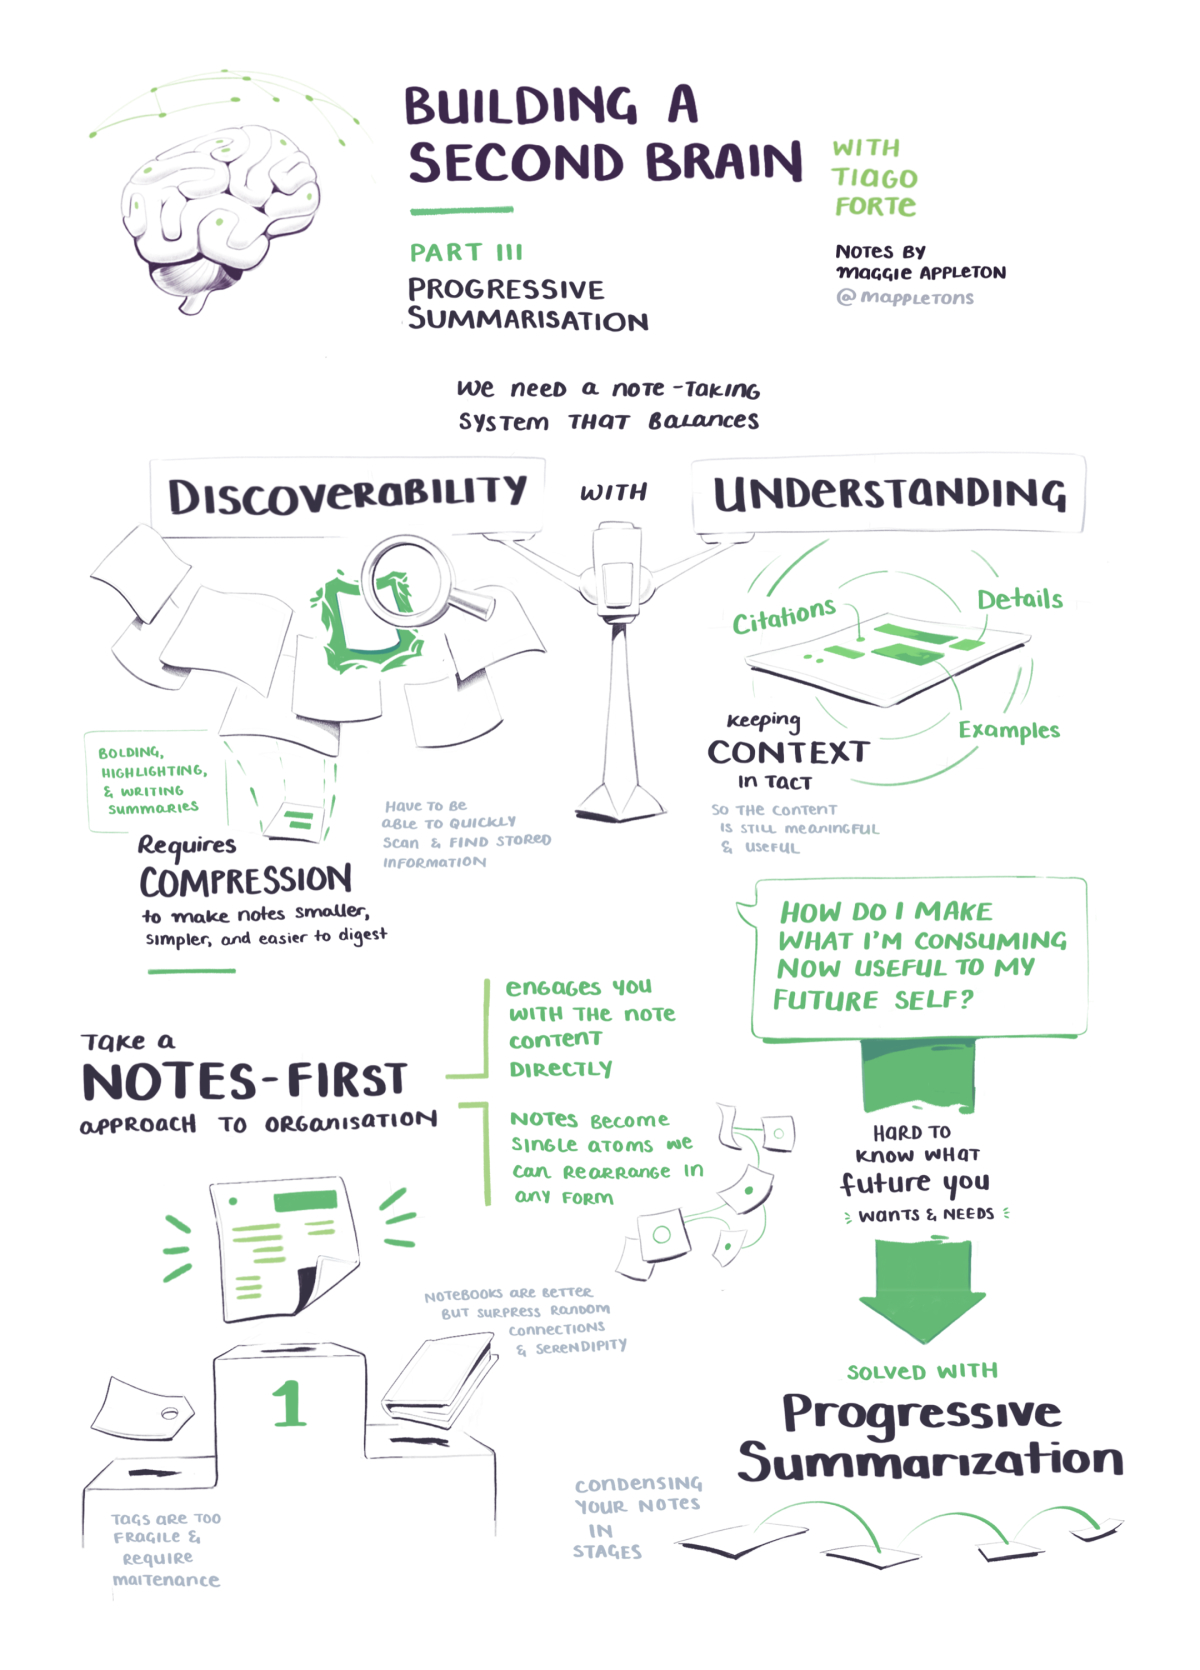 BASB sketchnotes on balancing discoverability with understanding in your notes